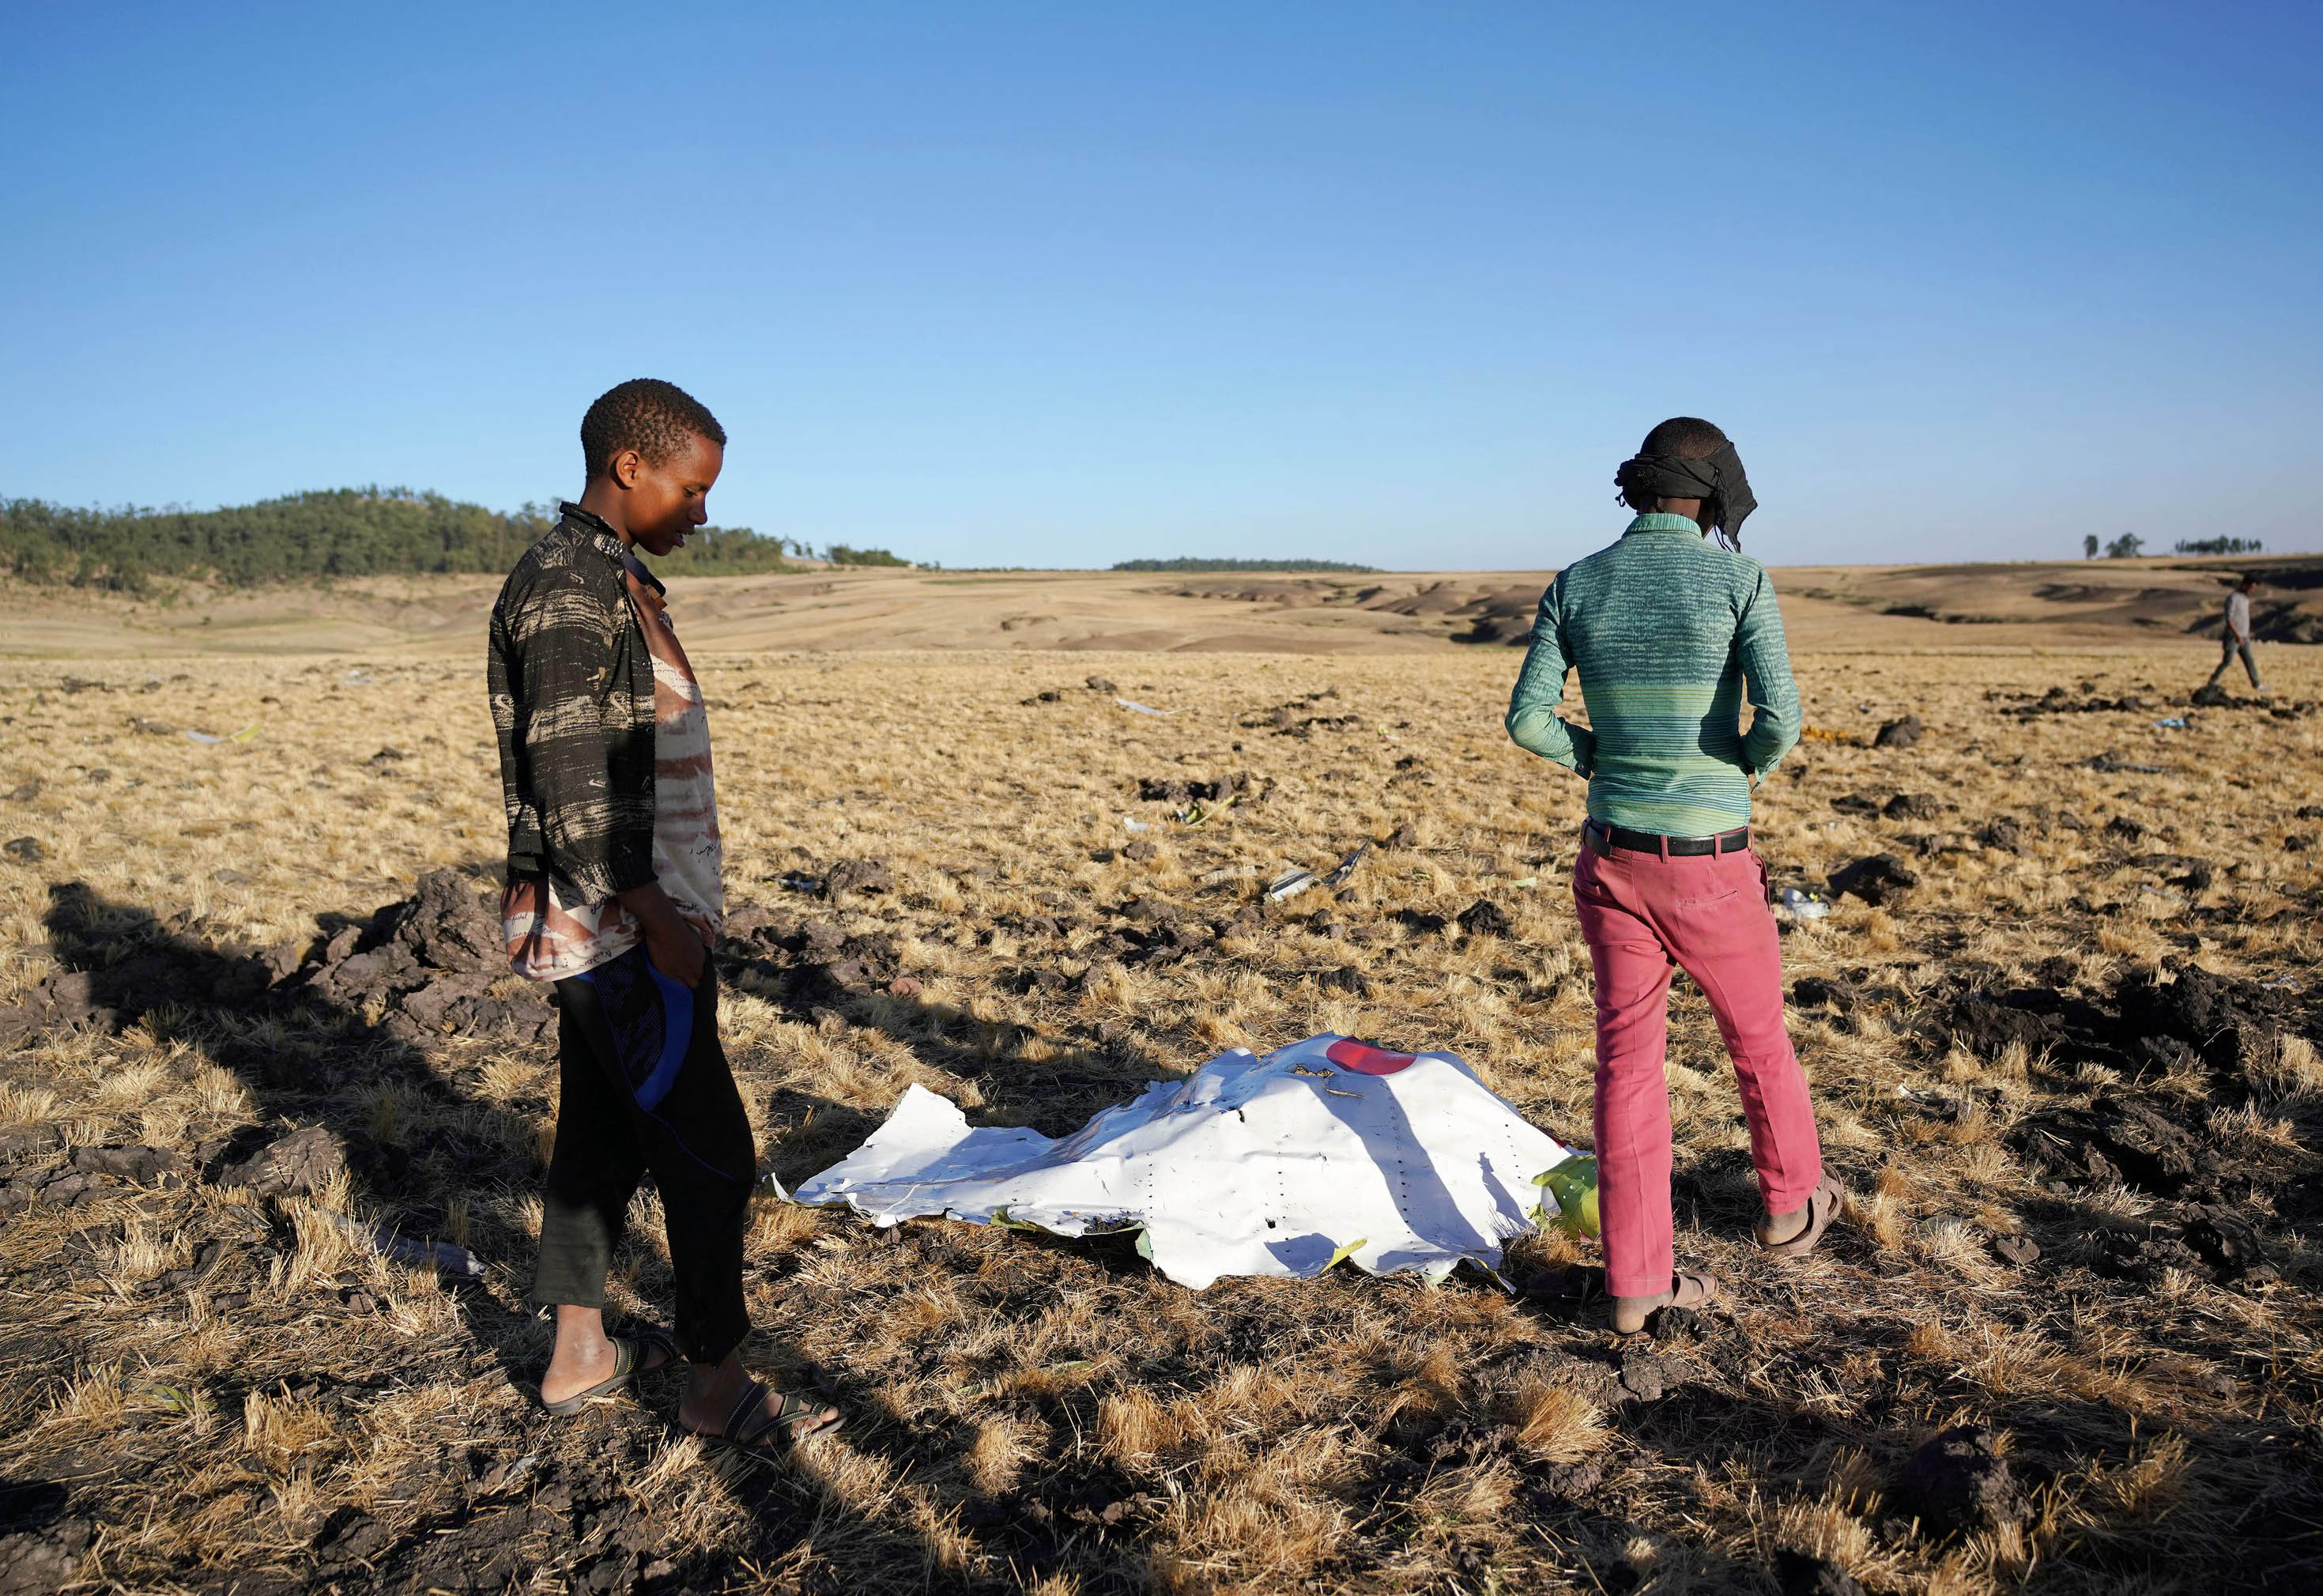 Local residents look at debris at the scene where Ethiopian Airlines Flight 302 crashed in a wheat field just outside the town of Bishoftu, 62 kilometers southeast of Addis Ababa on March 10, 2019, in Addis Ababa, Ethiopia. (Getty)